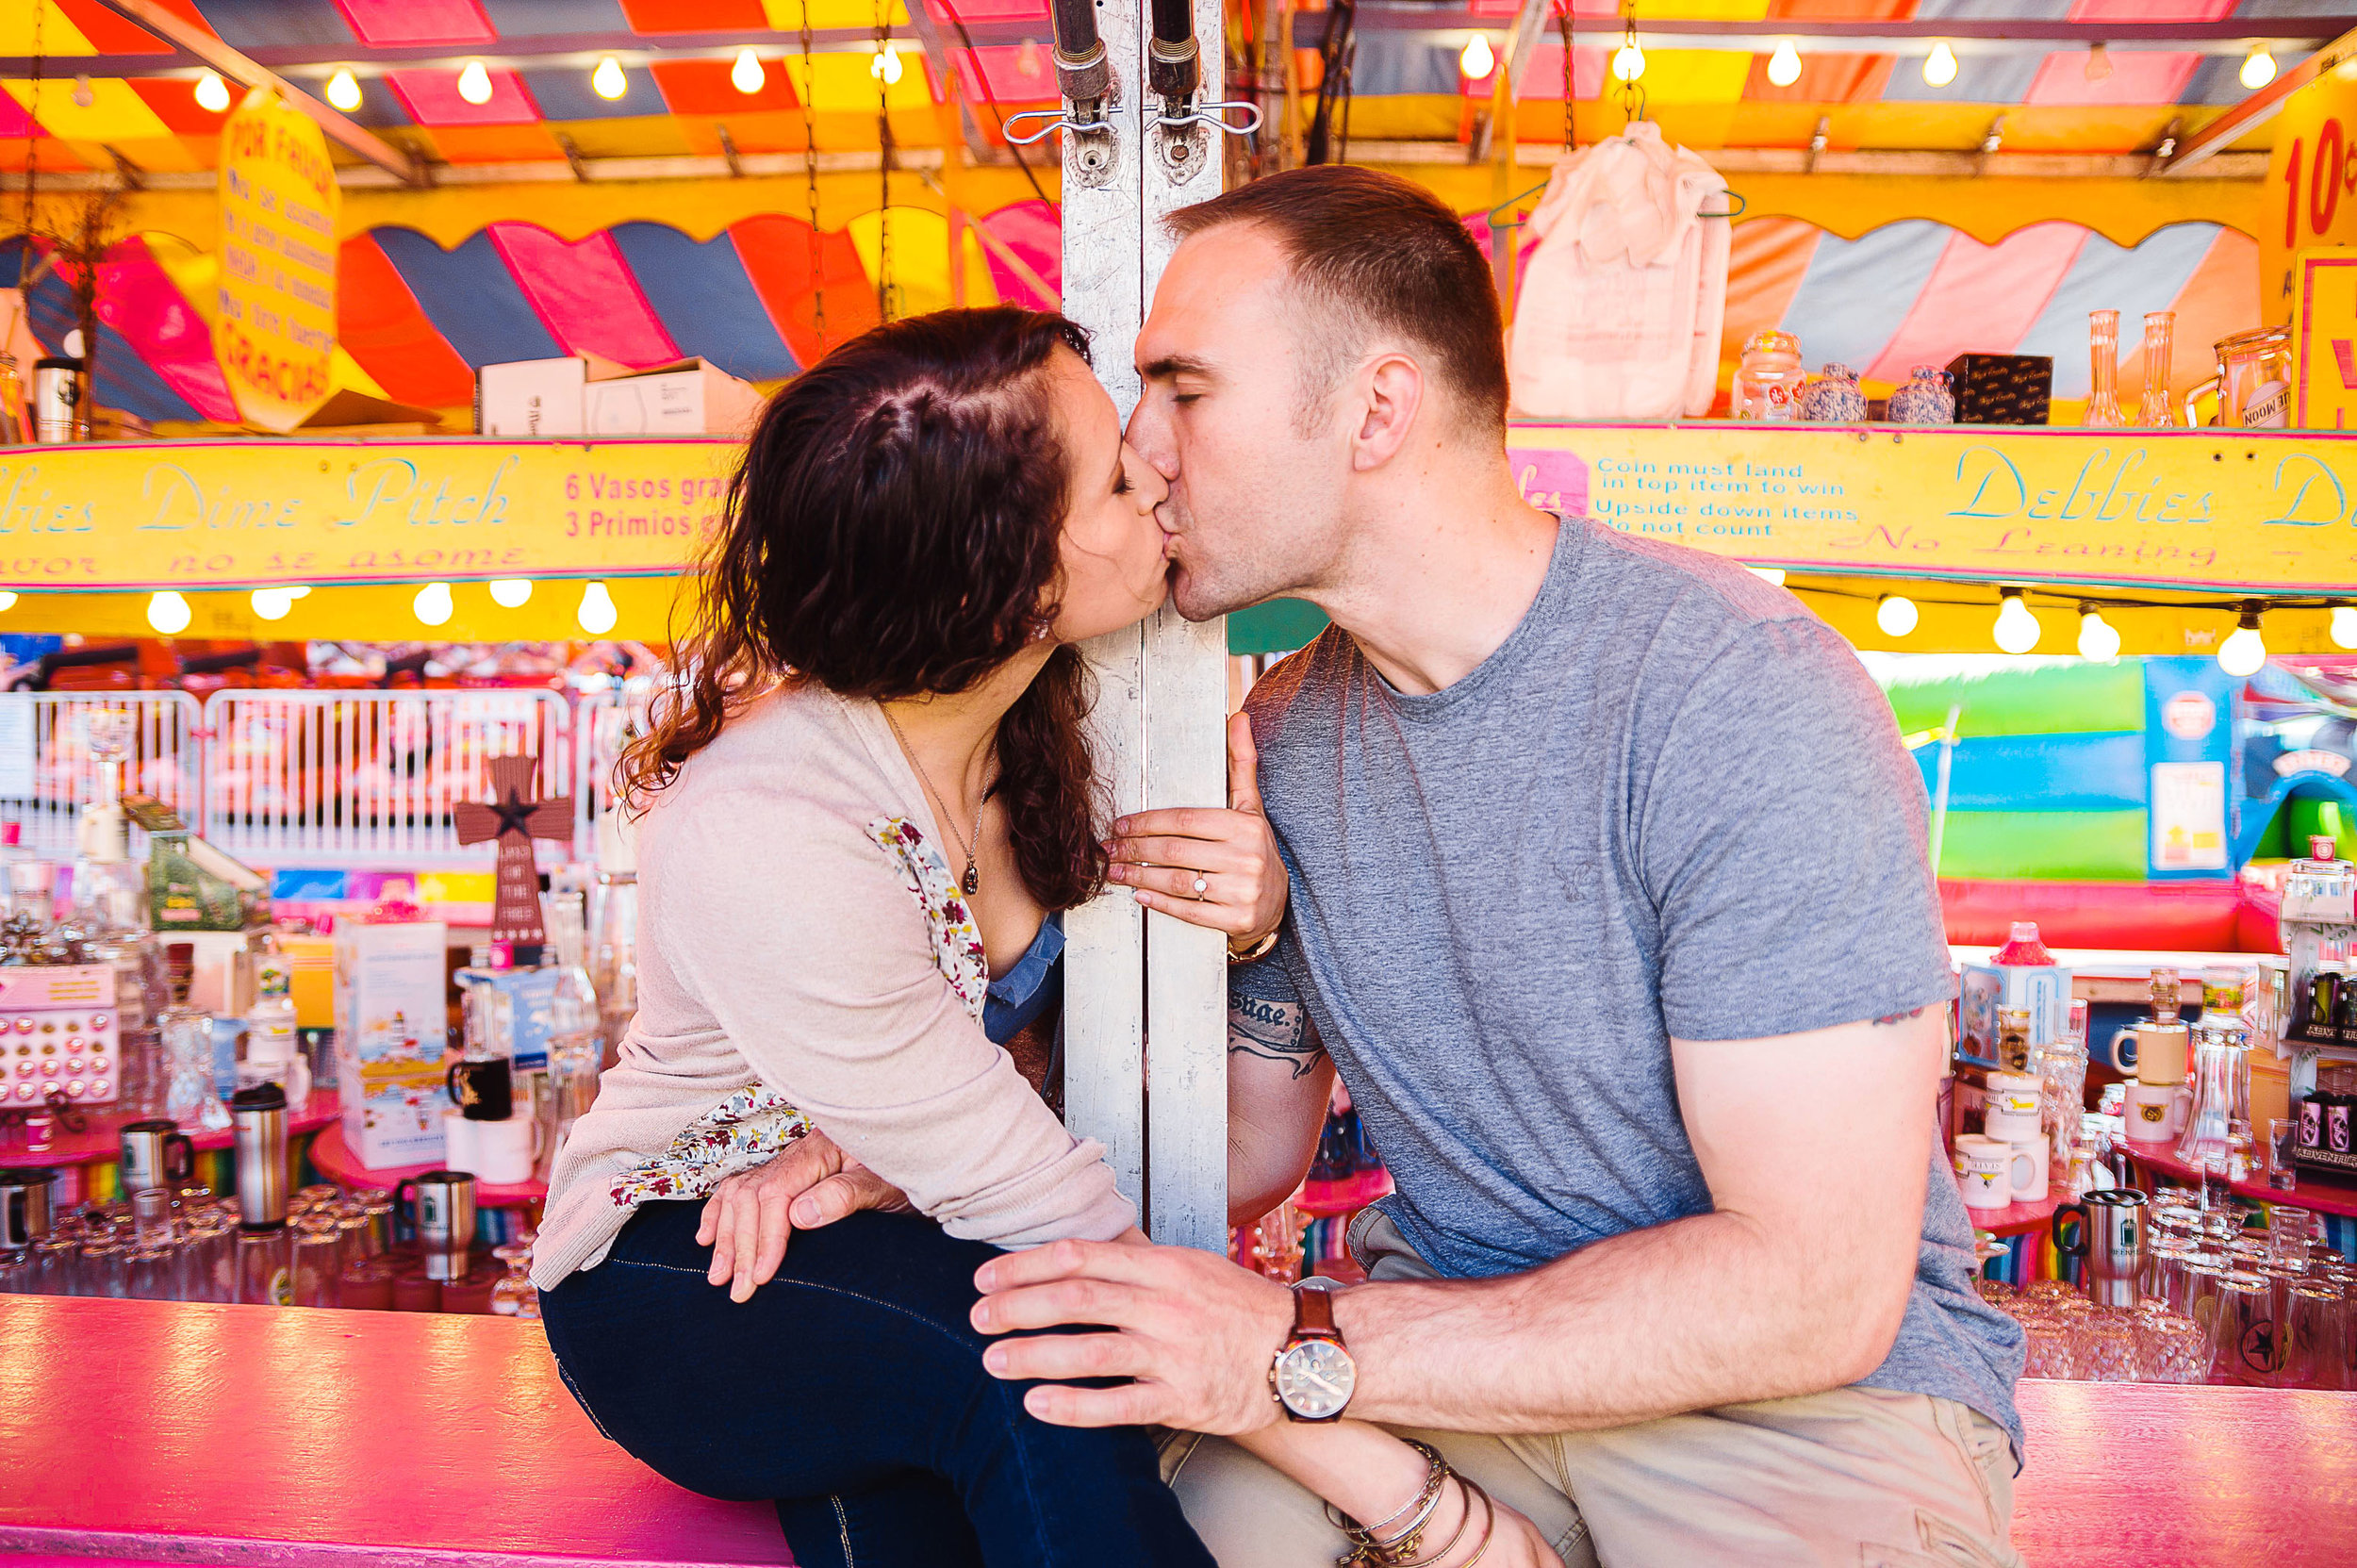 Colorful county fair virginia engagement session by Jessica Nazarova